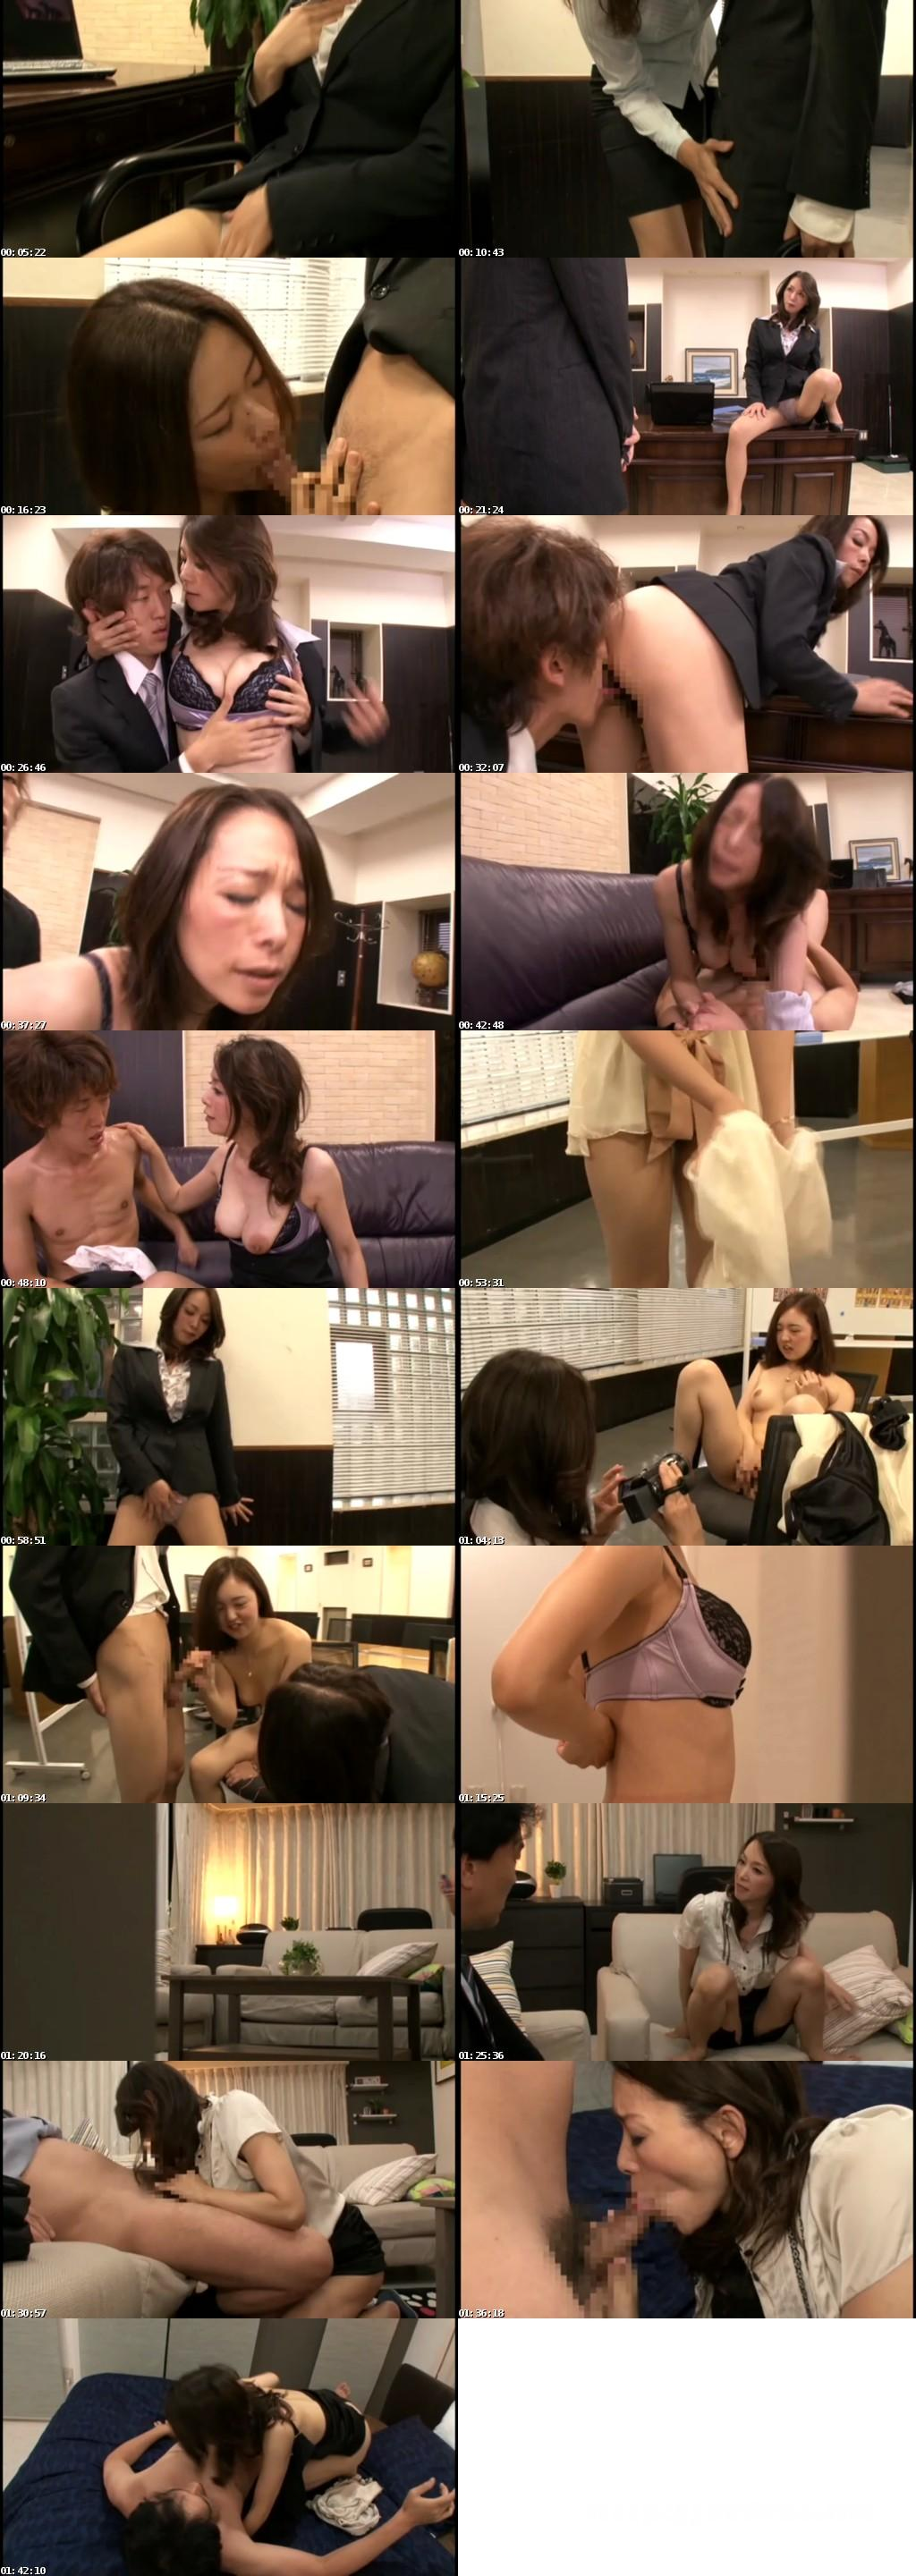 [MLW-2045] いやらしい女社長のいる会社 若松かをり - image MLW-2045 on https://javfree.me